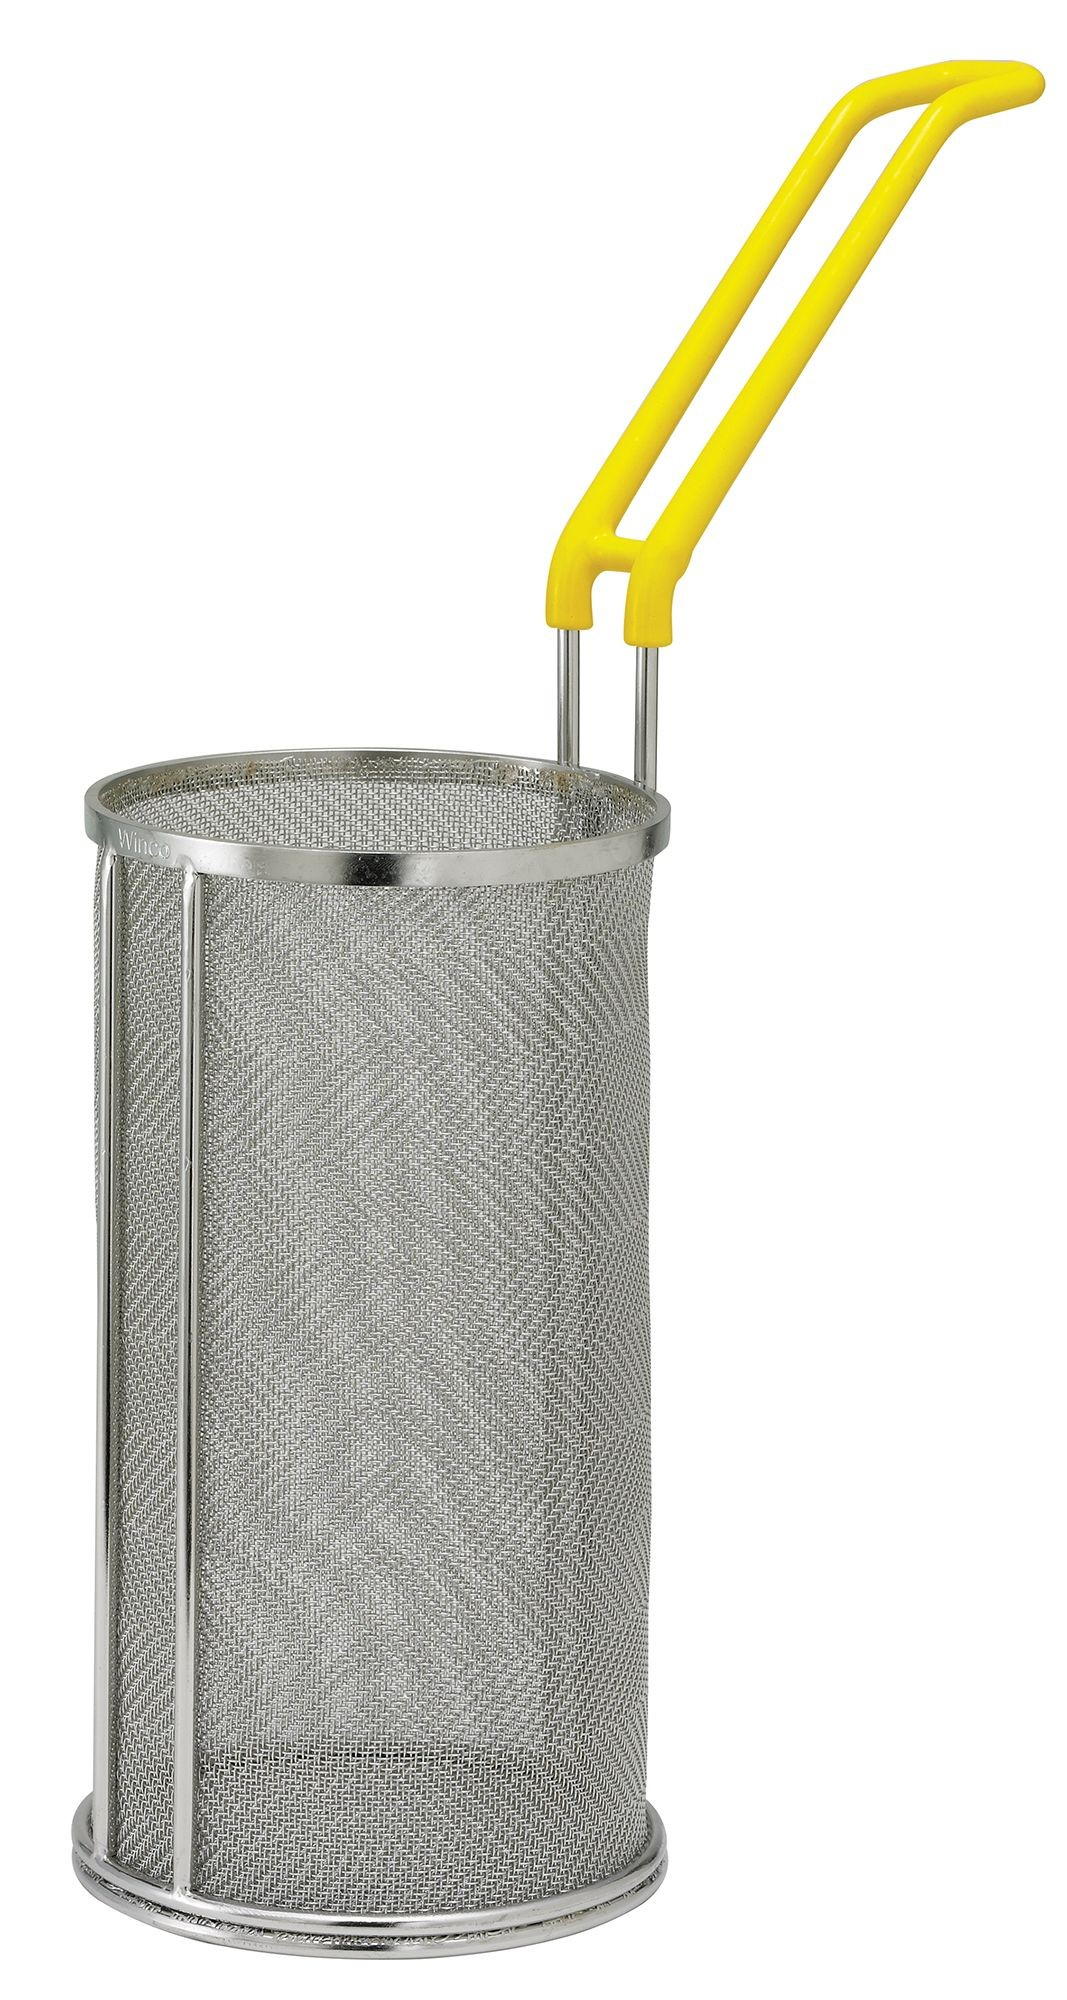 Super Fine Mesh Cylindrical Basket, 5